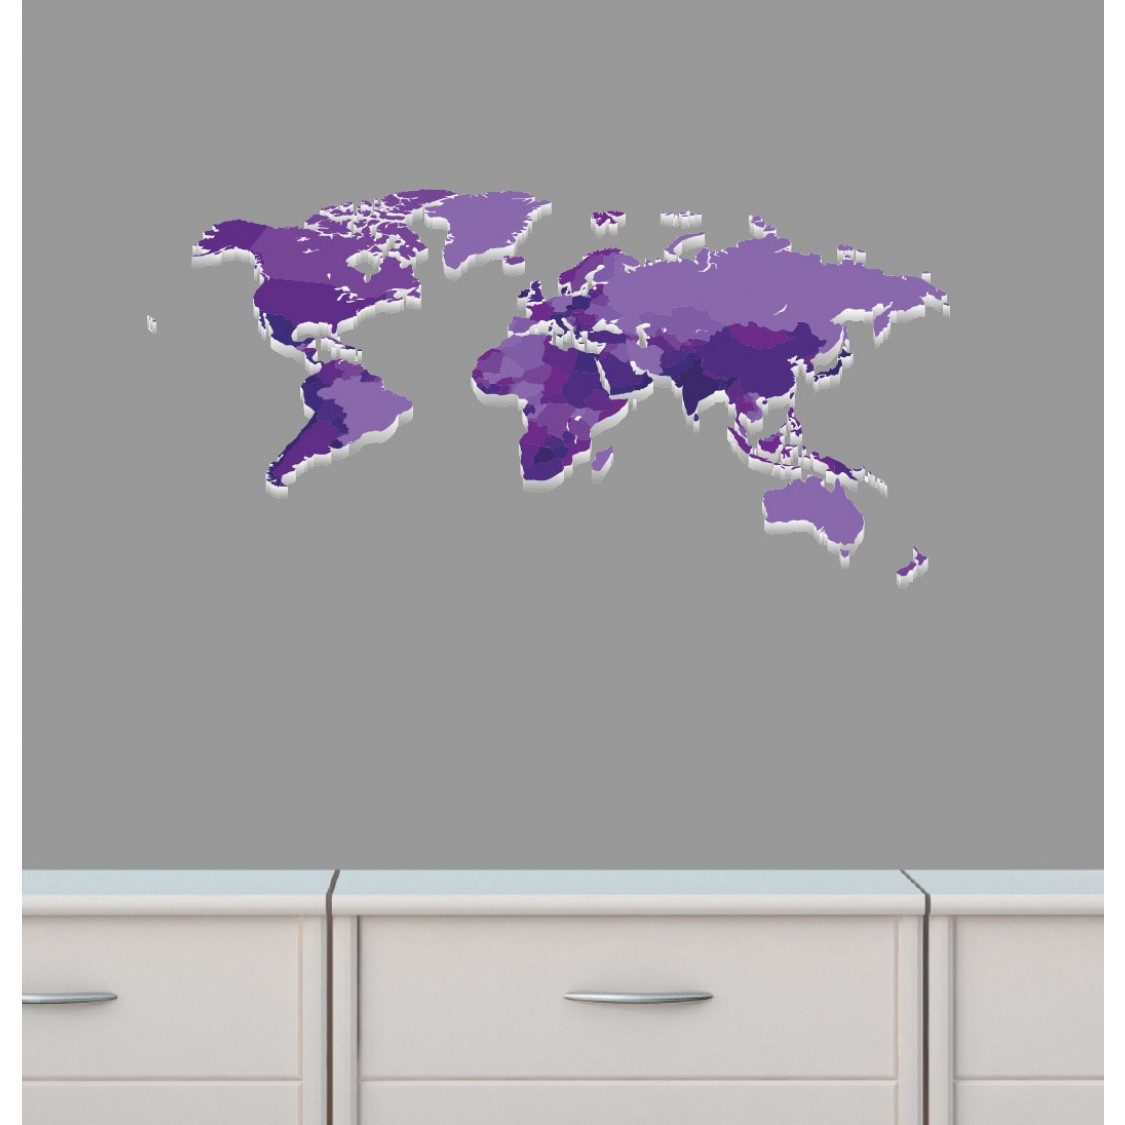 Map Of The World Stickers For Walls Mini Purple World Map Wall Decal For Girls Room